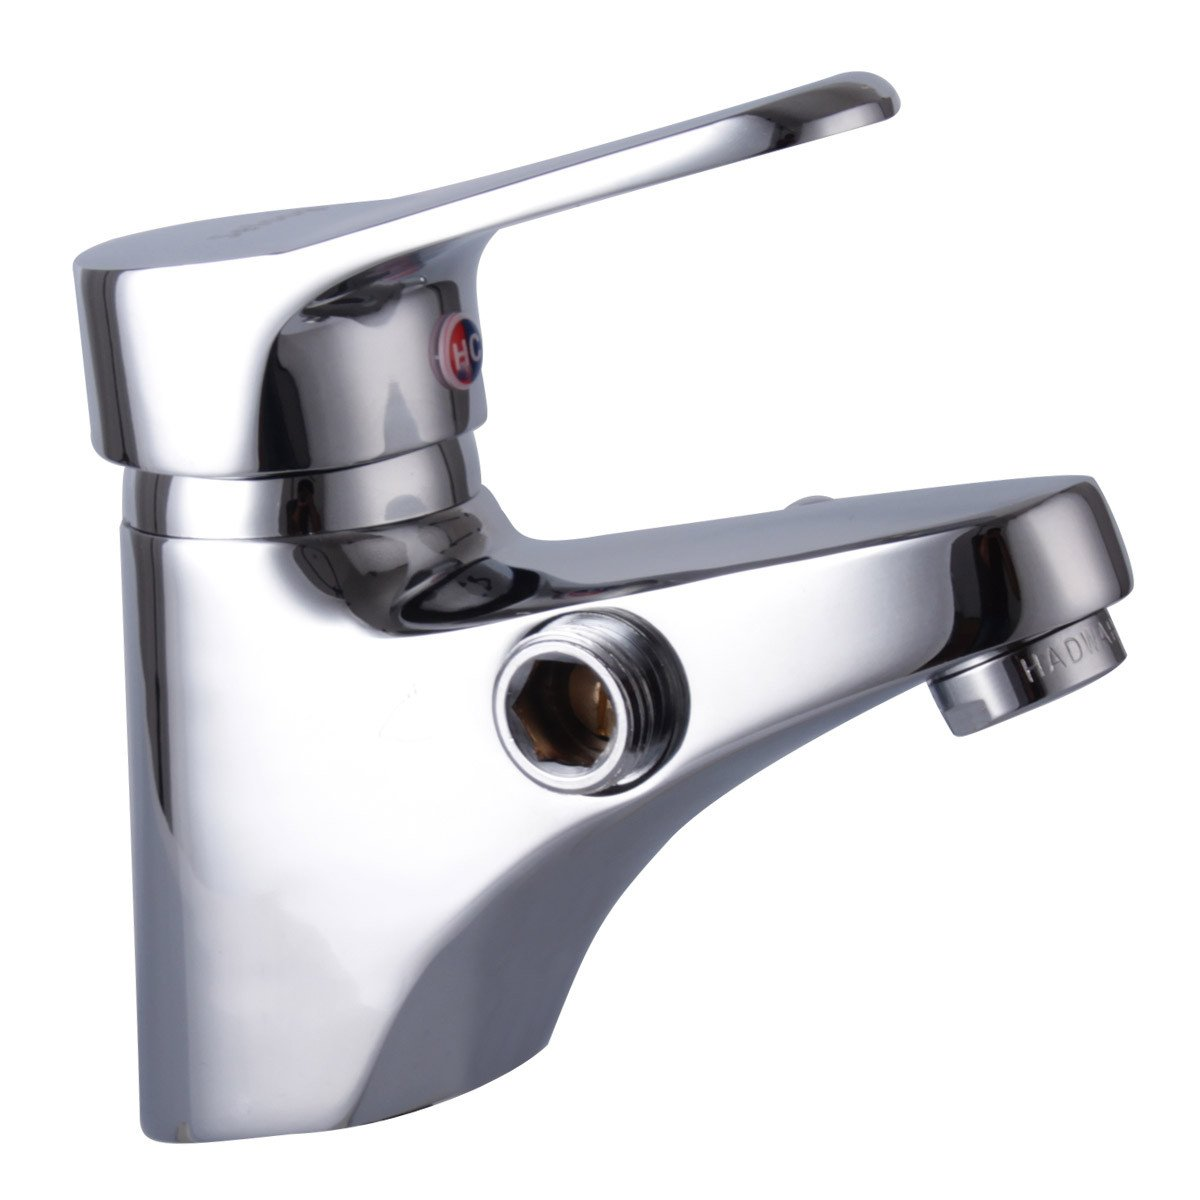 Furesnts Pure Copper Single Hole Hot and Cold Water Basin Taps Double Wash Basin Shower Faucet Bathroom Sink Taps,(Standard G 1/2 universal hose ports)